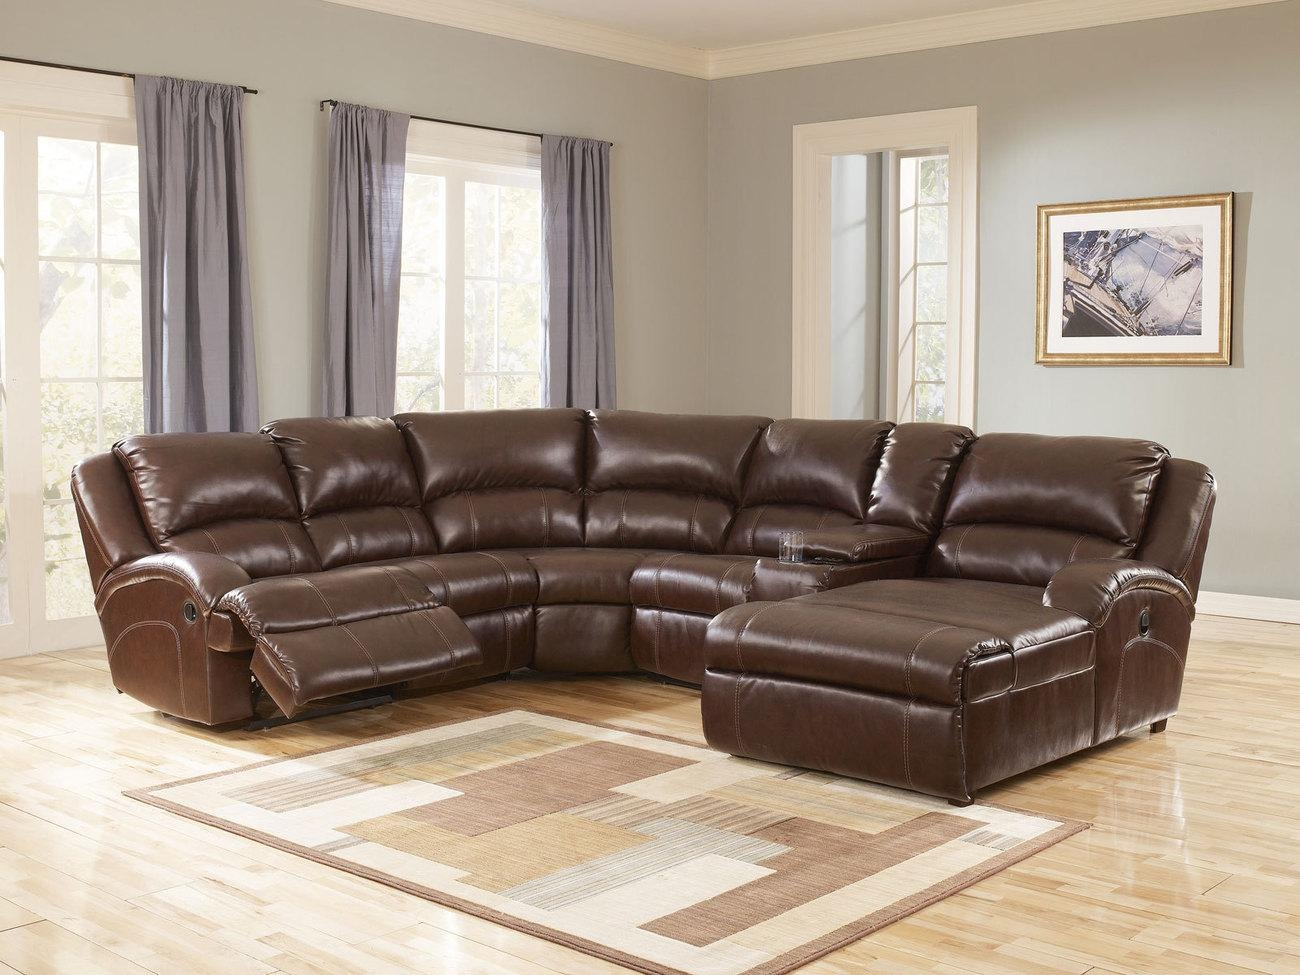 Furniture: Create Your Living Room With Cool Sectional Recliner Intended For Curved Sectional Sofa With Recliner (Image 7 of 15)